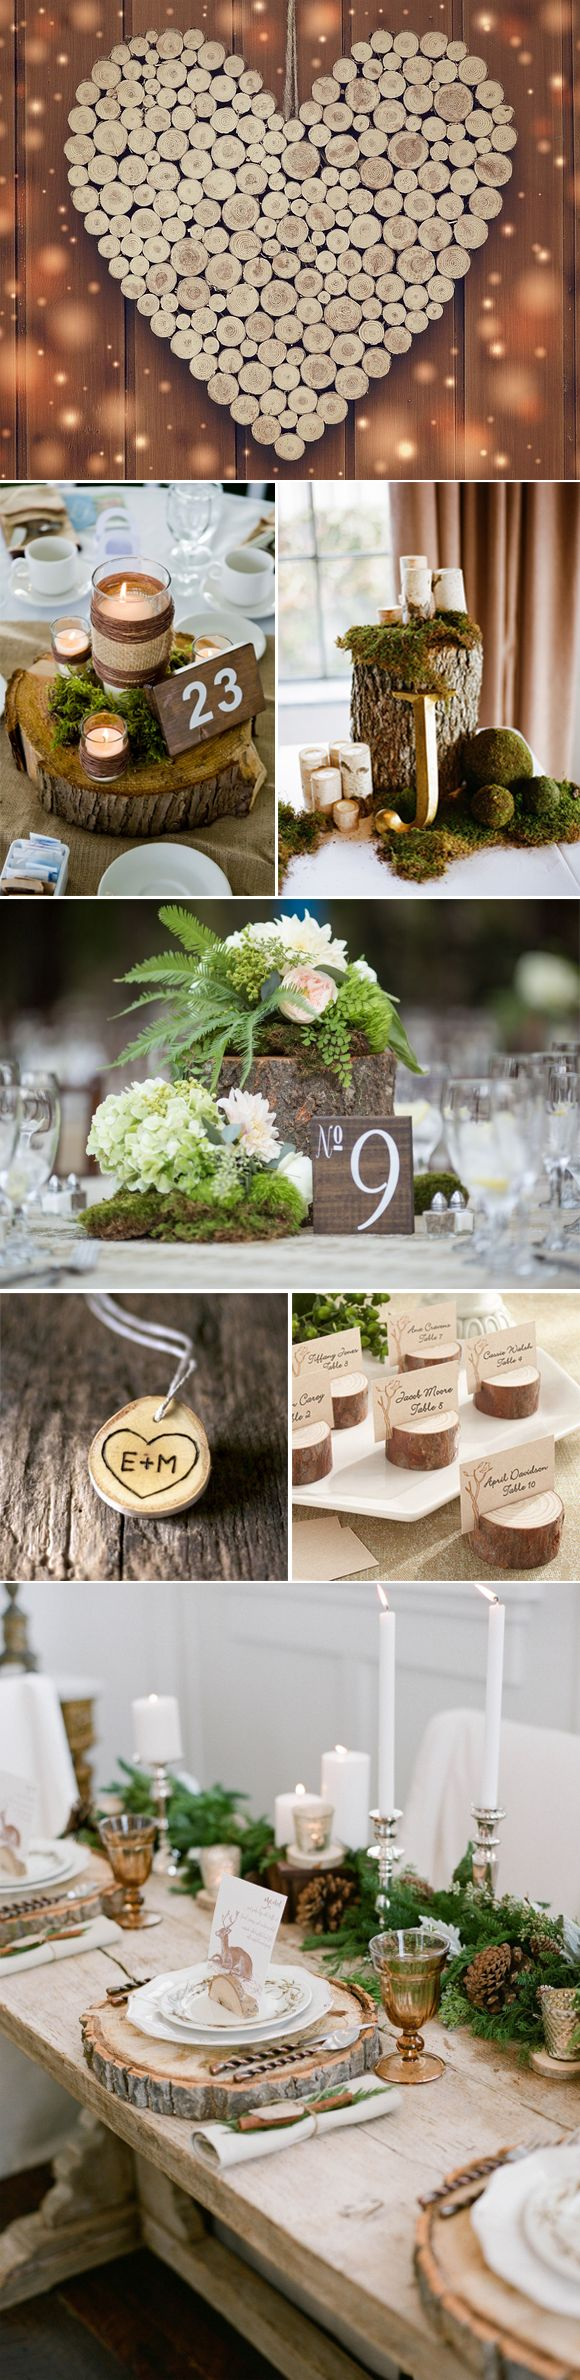 Decoracion de boda con troncos de madera #rusticdecor #rusticweddingdecor #decoracionrustica #decoracionbodas